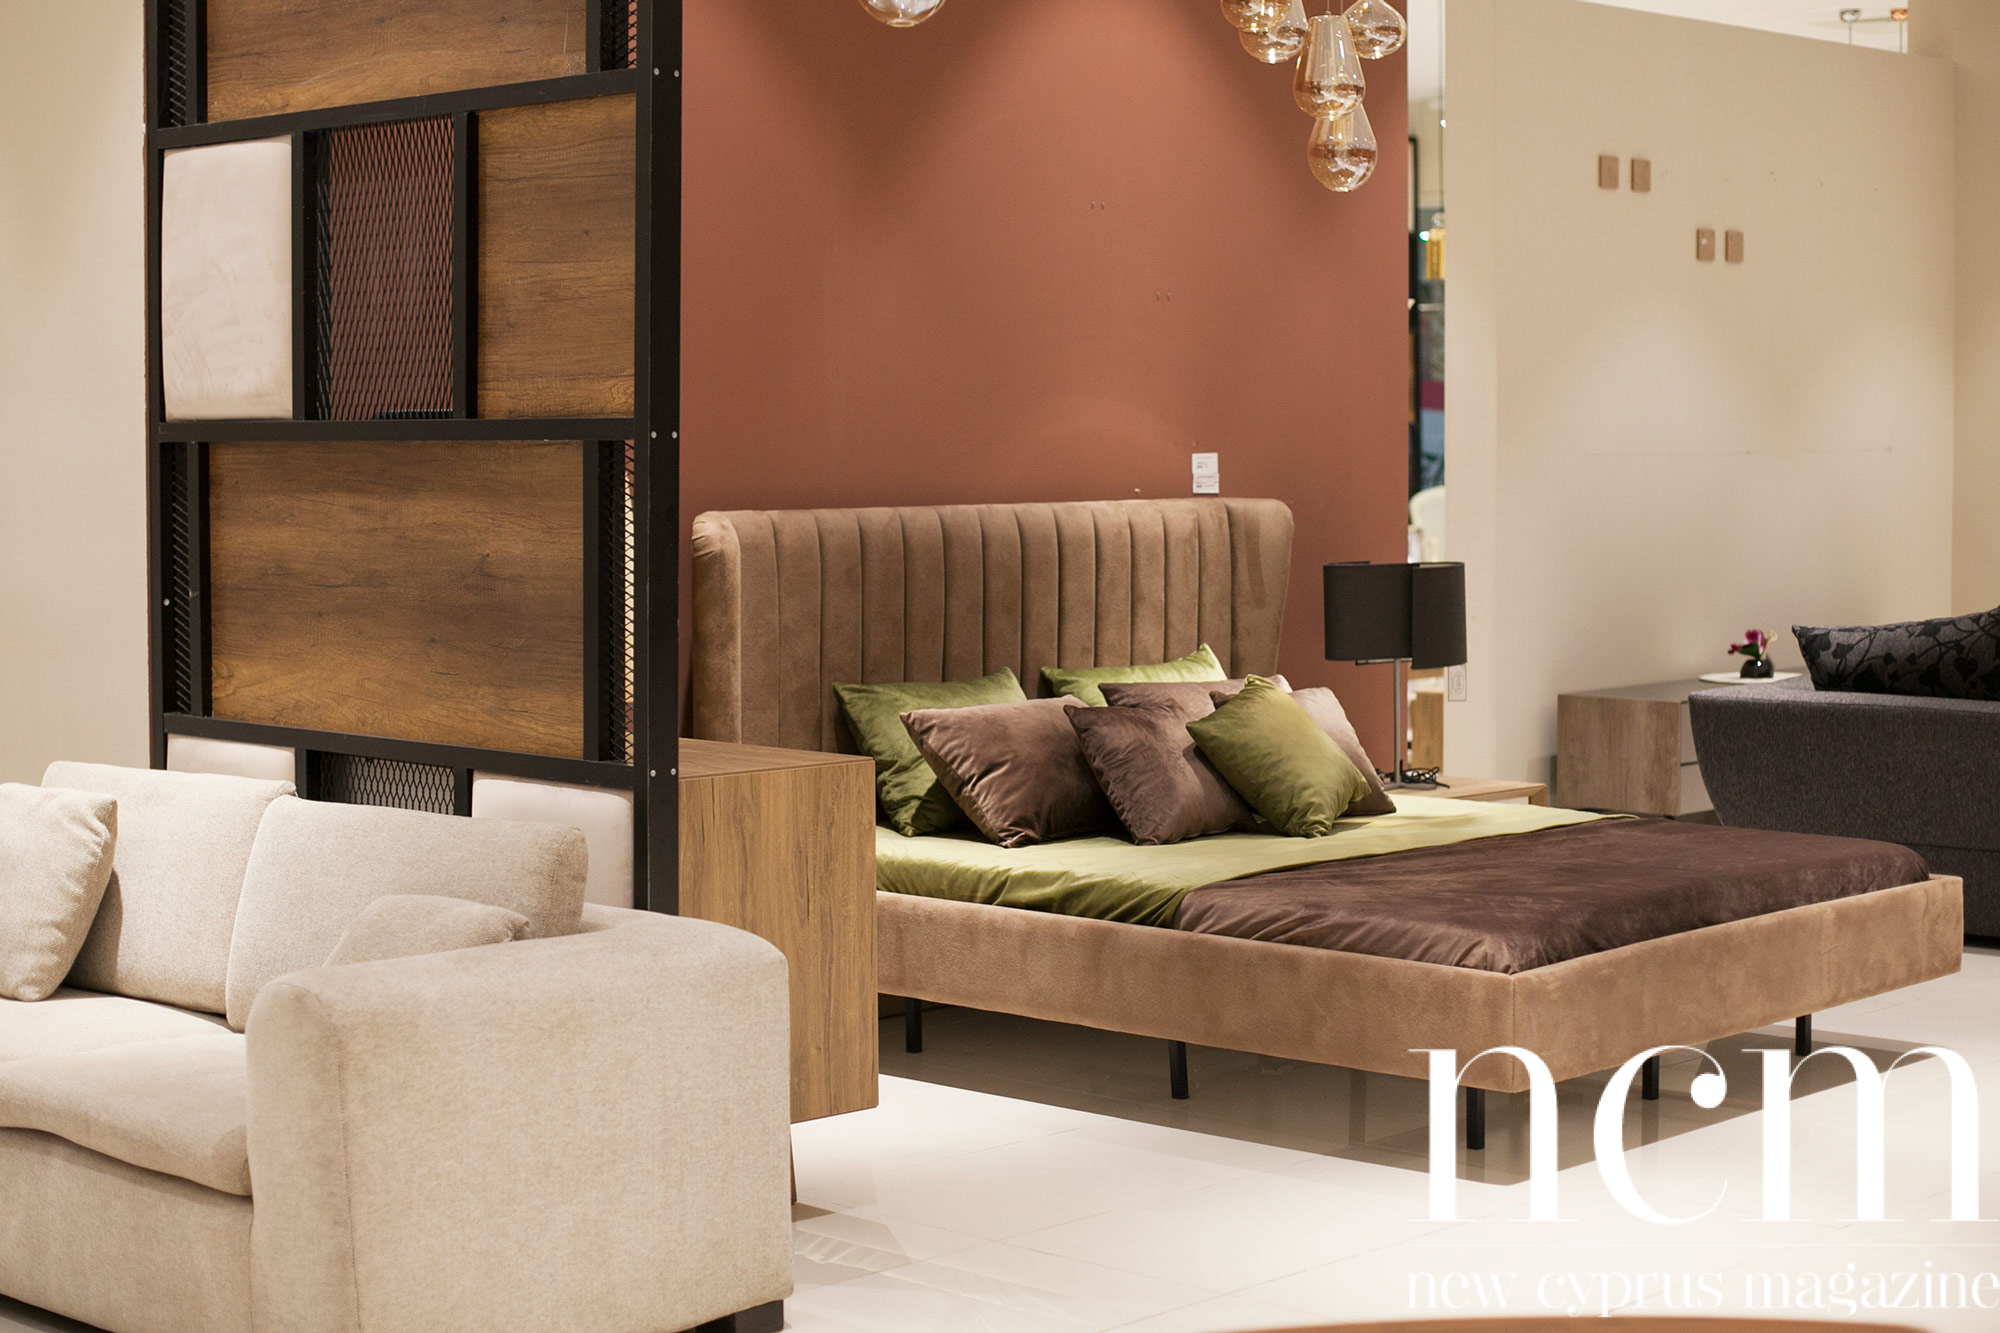 Index Furniture Store i Famagusta